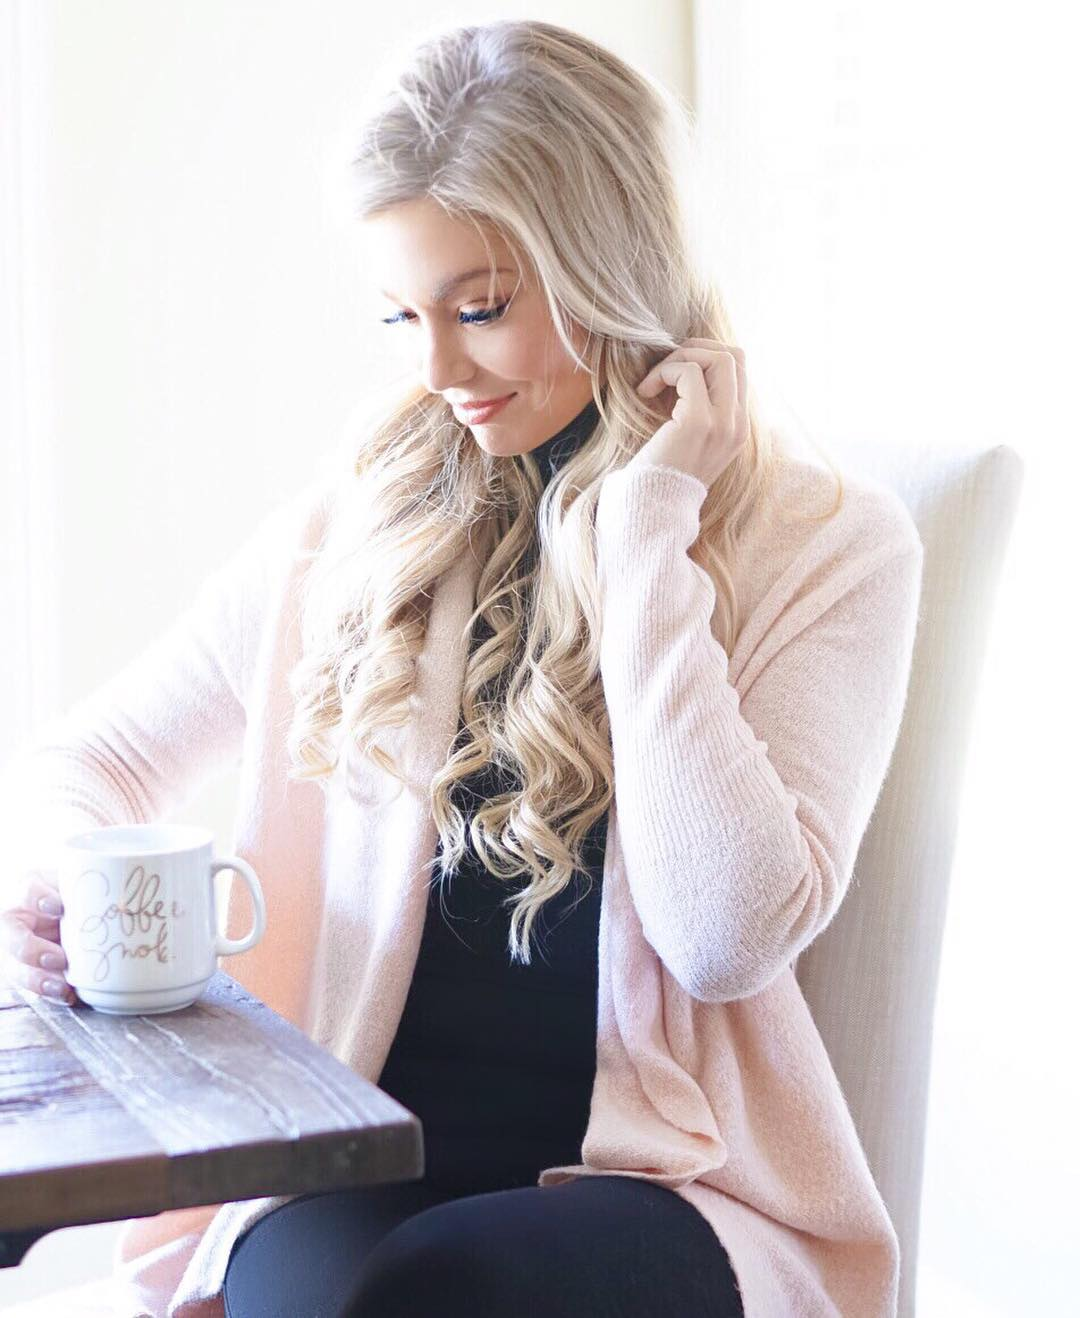 Coffee is my love language! ☕️ Especially on mornings when the time change has my kiddo up at 5AM! {This cardigan is the softest thing EVER & comes in several colors!} http://liketk.it/2pxFe #liketkit #liketkitunder100 #ootd #wiw #momlife #fall #fallfashion #sweaterweather #sundayfunday